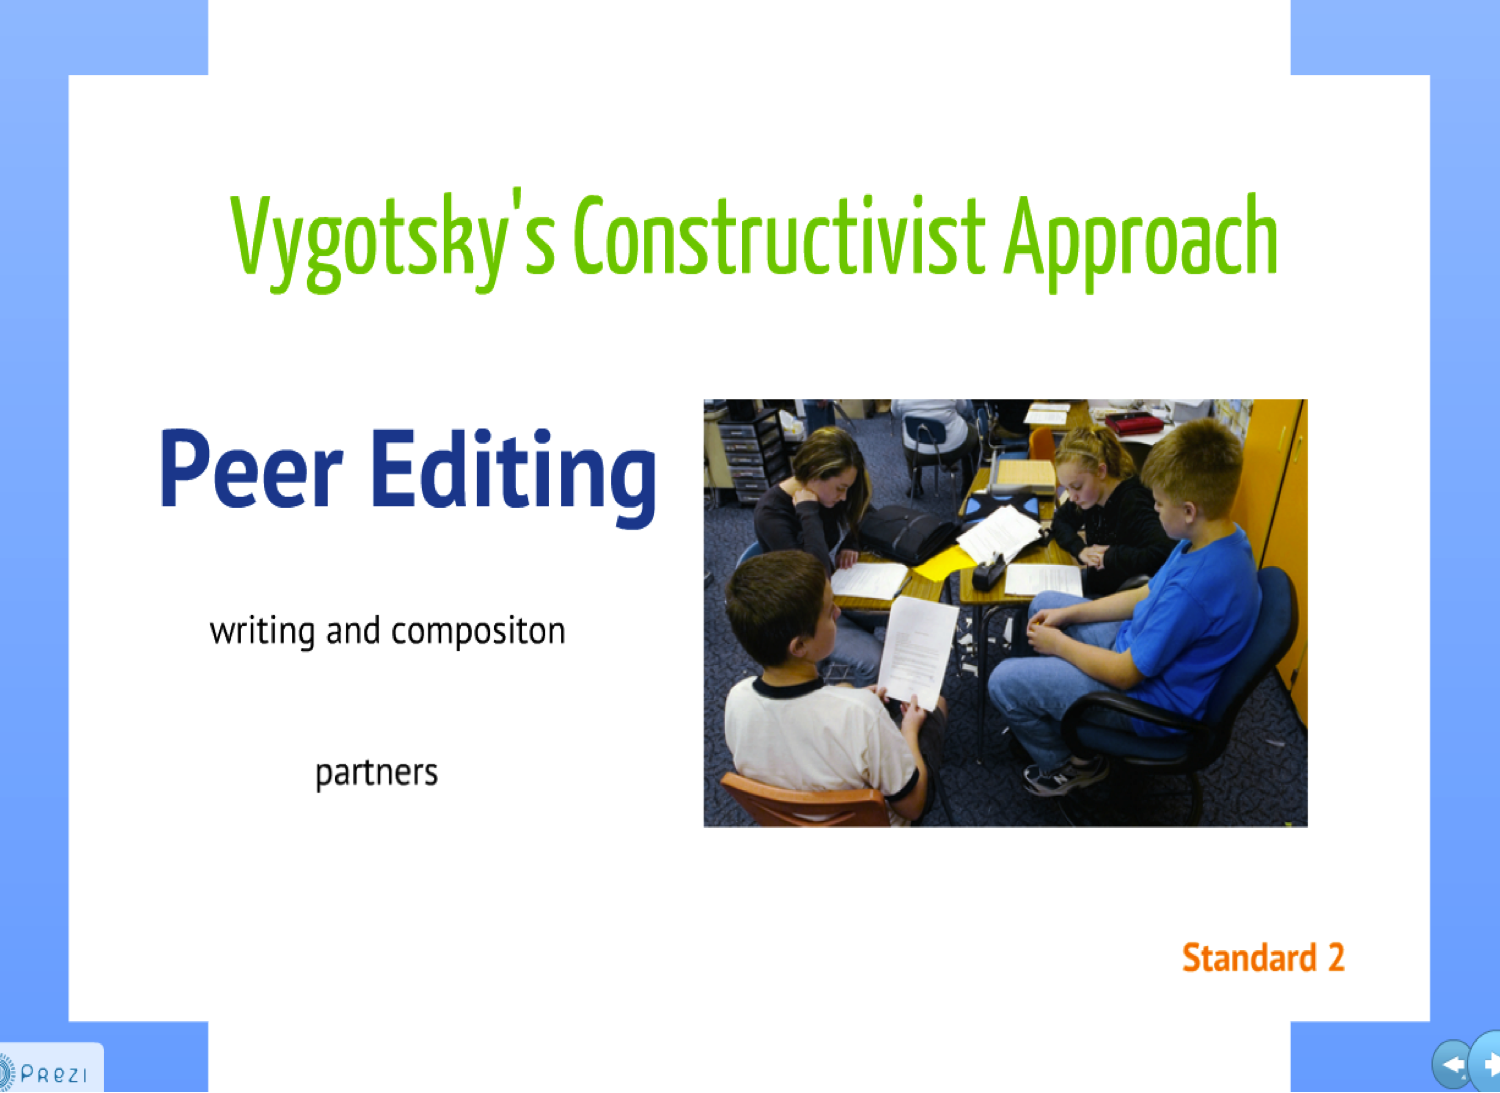 constructivism in the classroom essay Open document below is an essay on implementation of constructivism in the classroom from anti essays, your source for research papers, essays, and term paper examples.